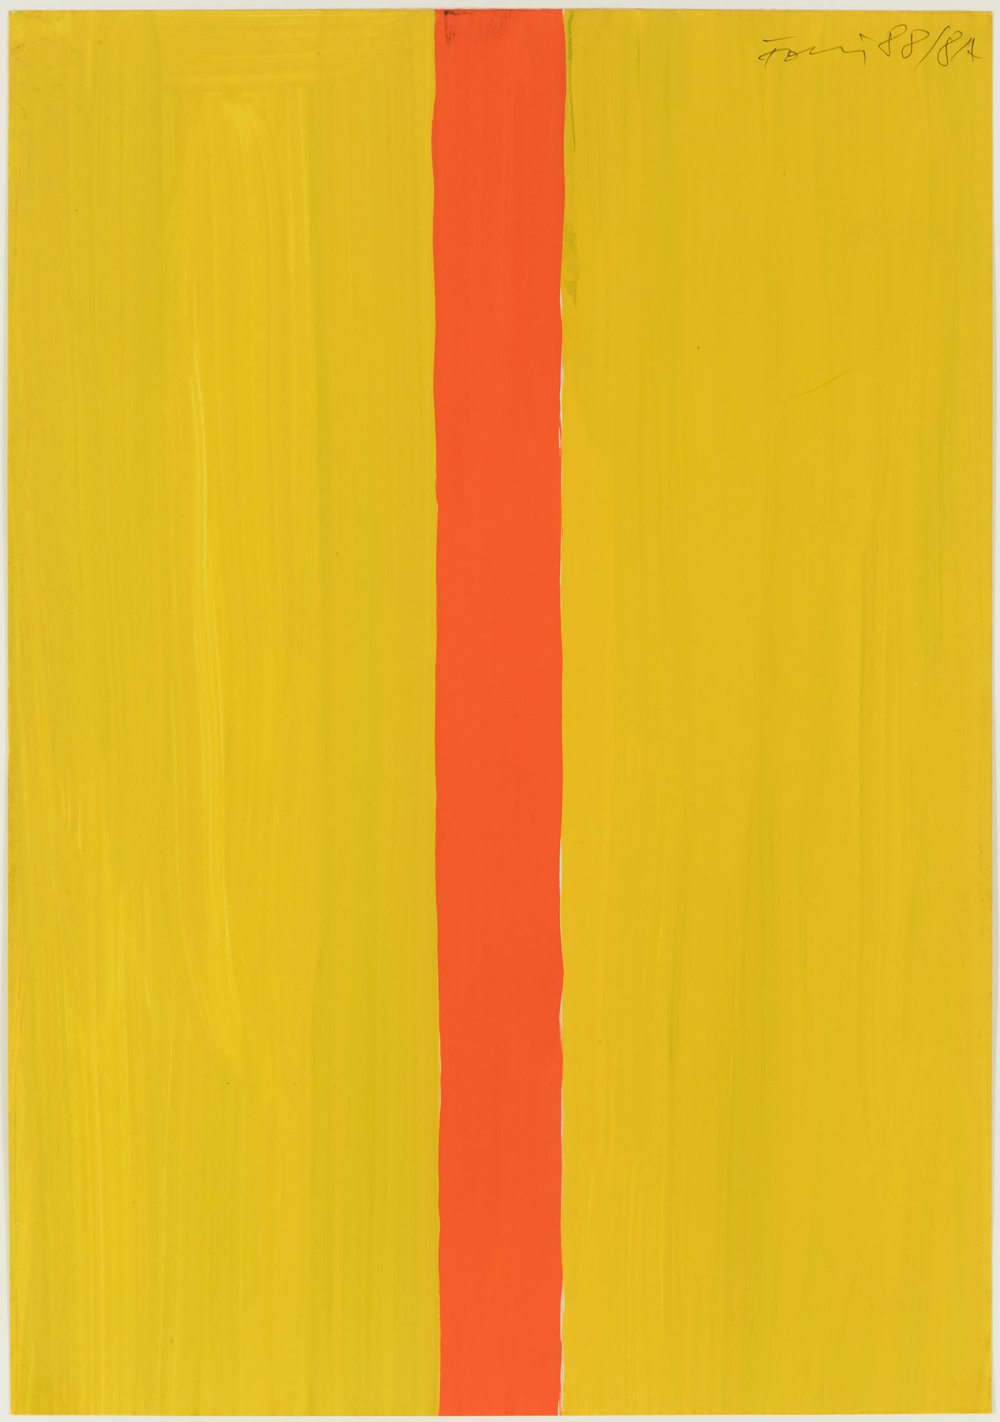 Untitled (yellow-orange)